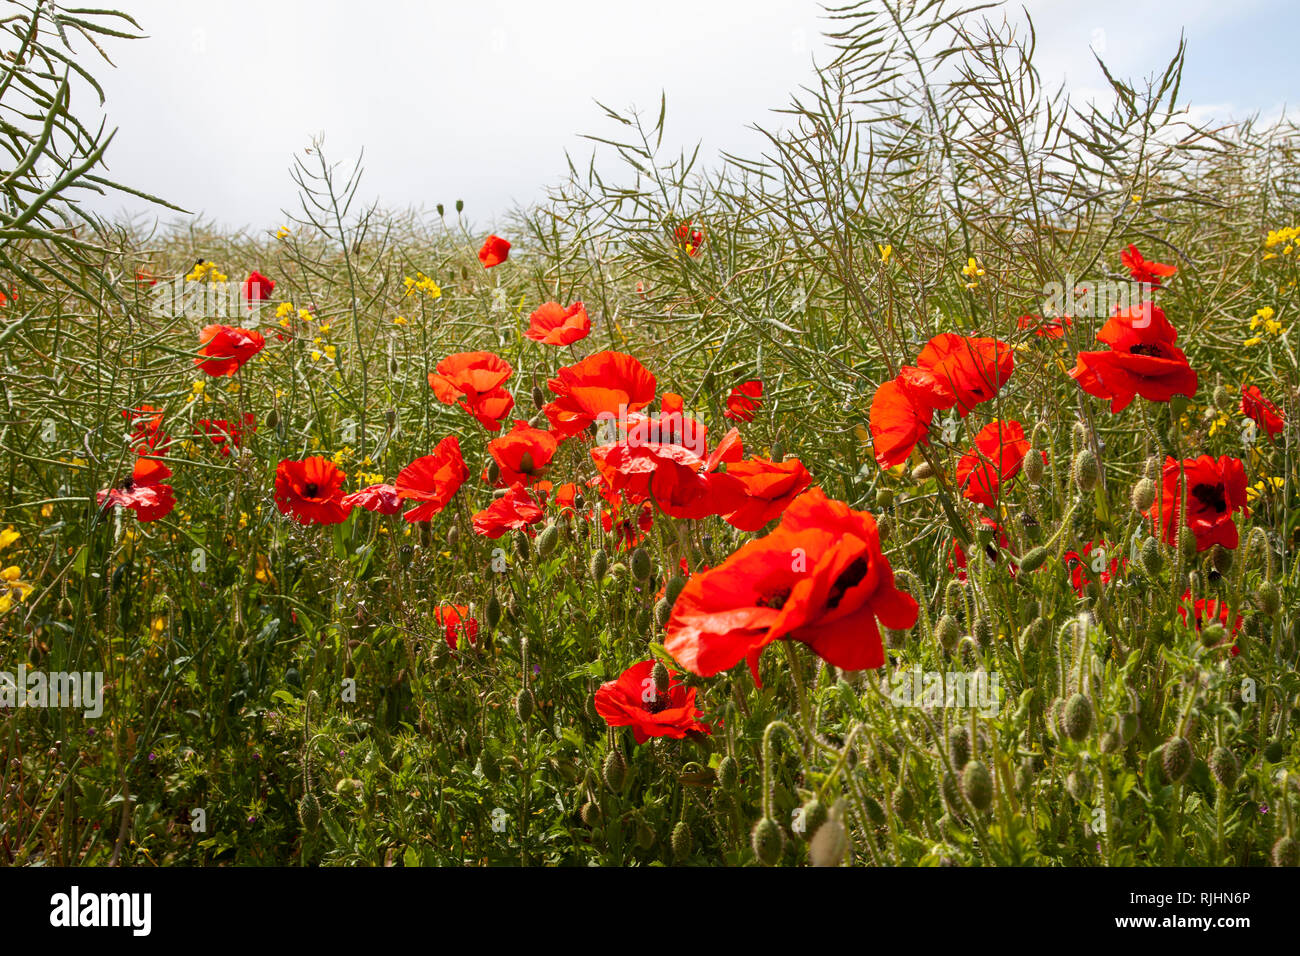 Common red poppies Papaver rhoeas  at eye level in a field together with other wild plants. - Stock Image